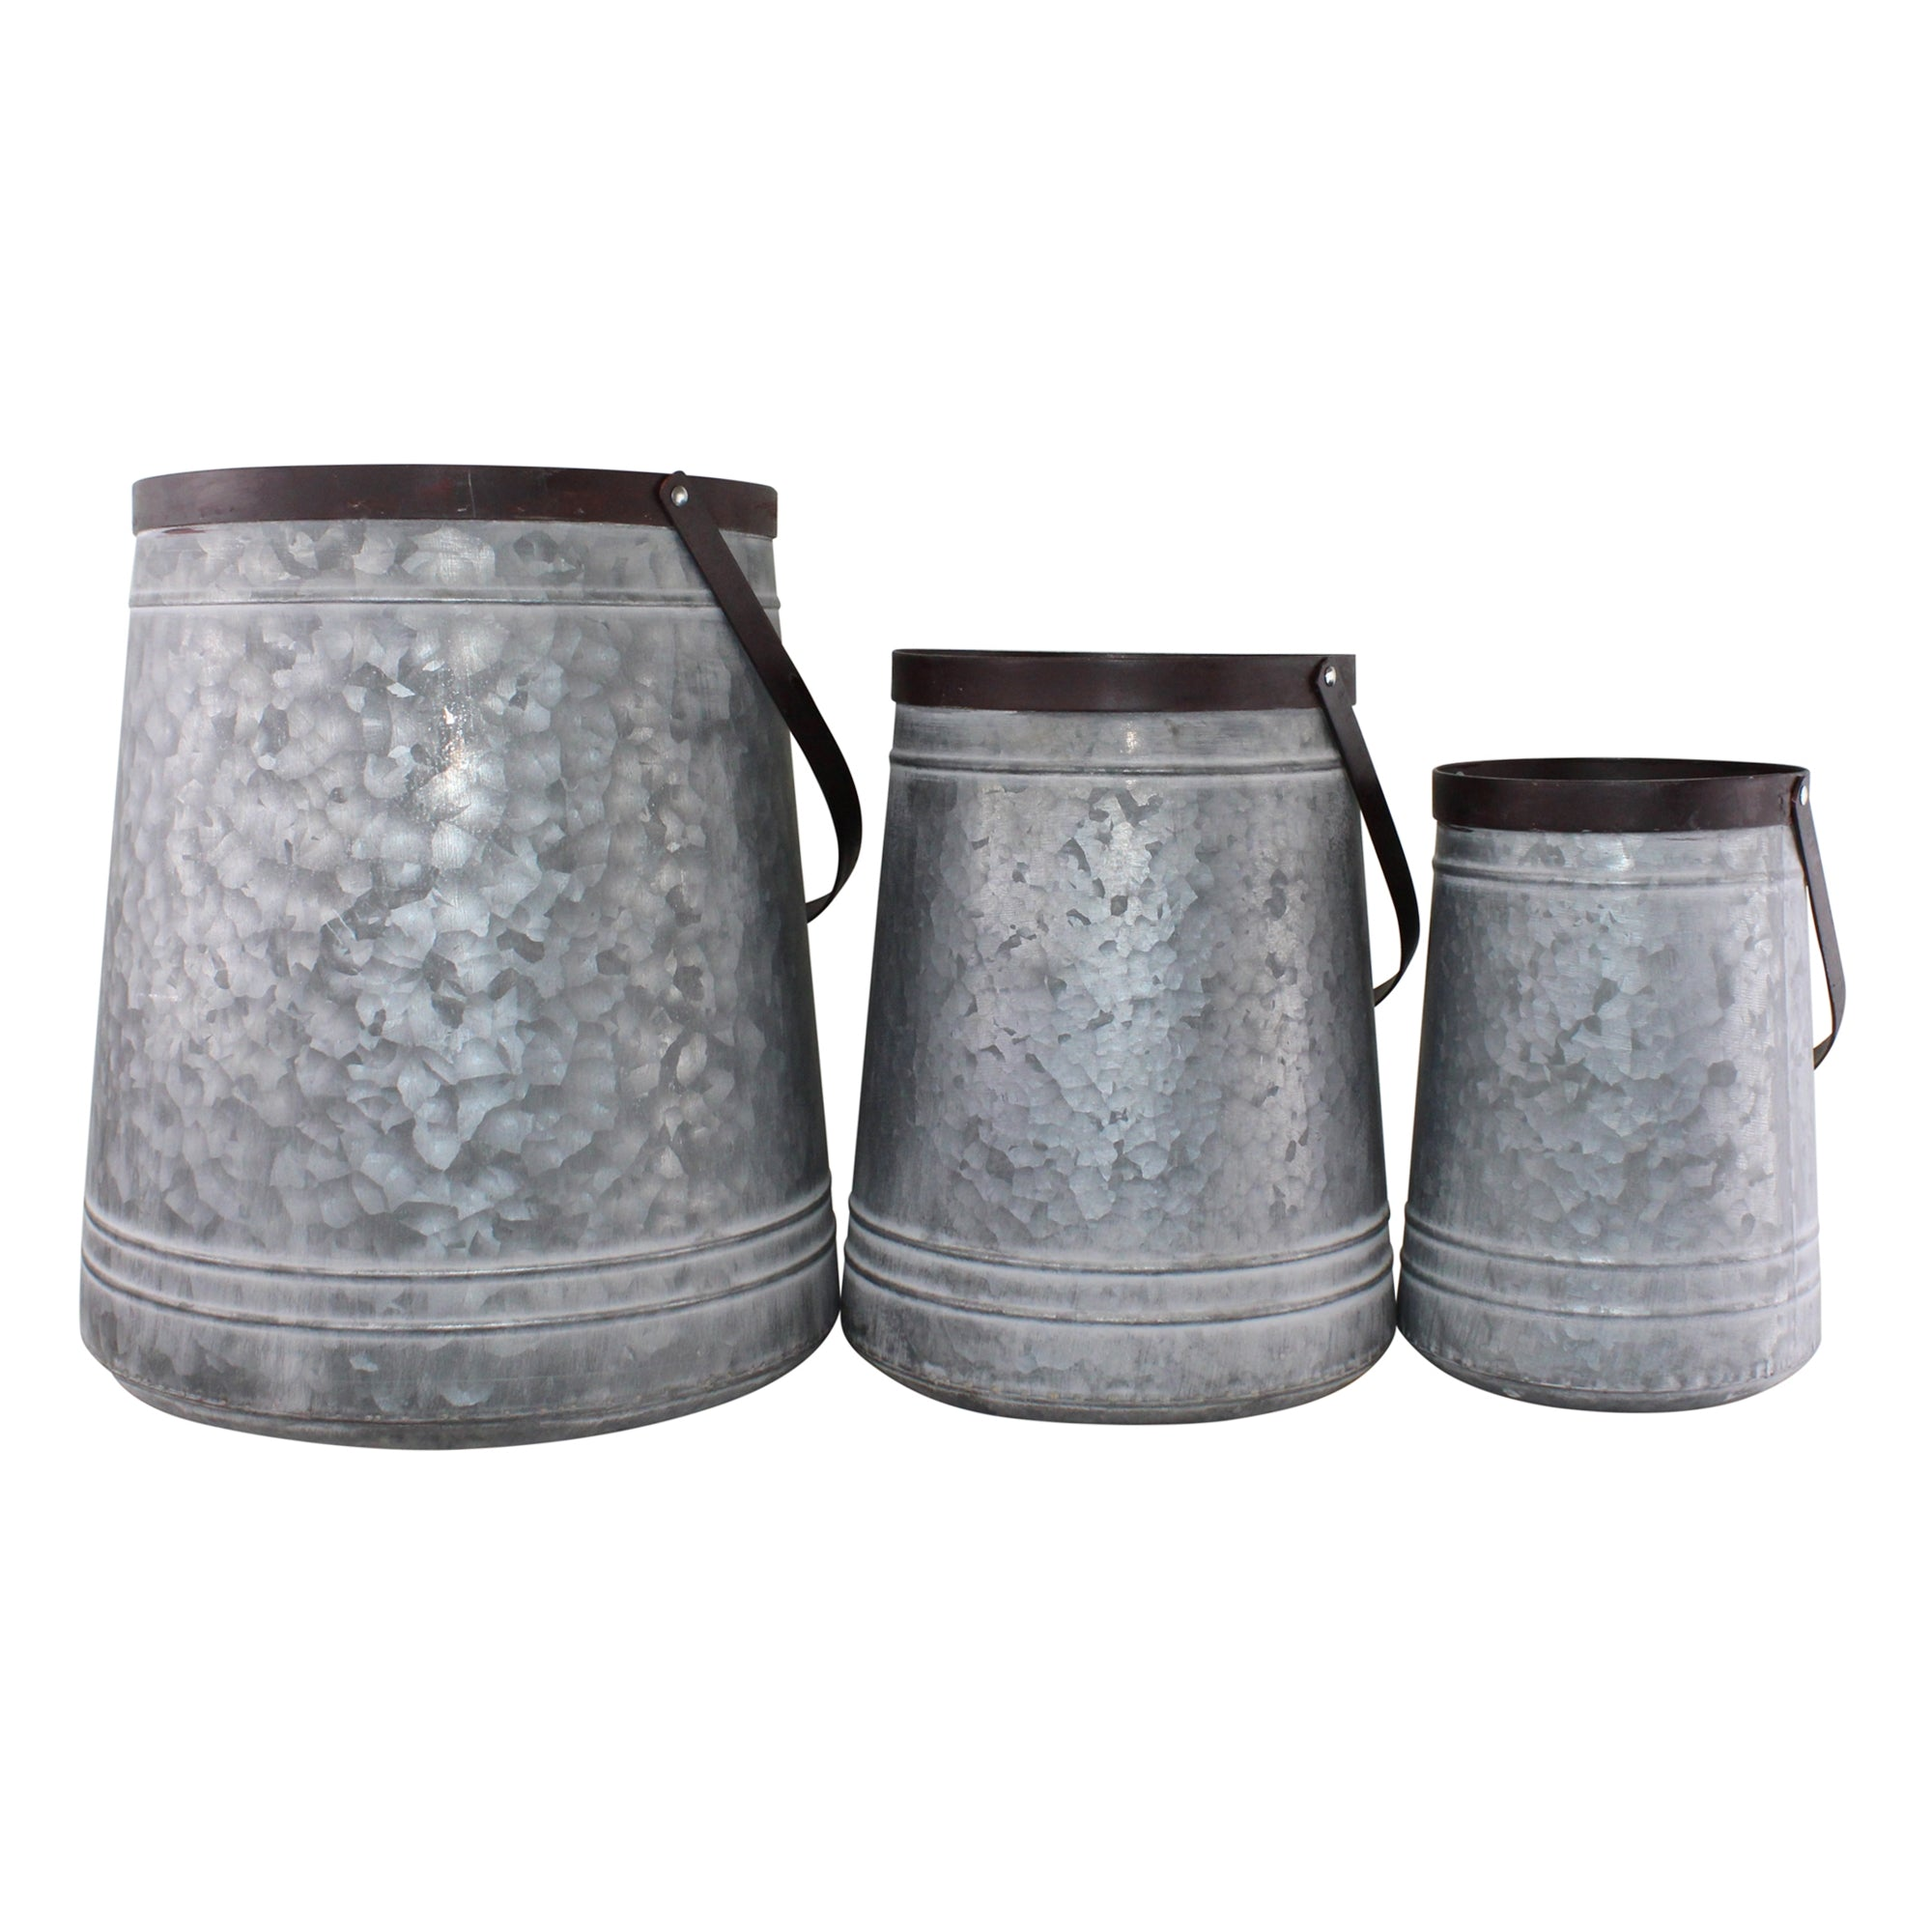 Set of 3 Bucket Style Metal Planters, Lawn & Garden by Low Cost Gifts